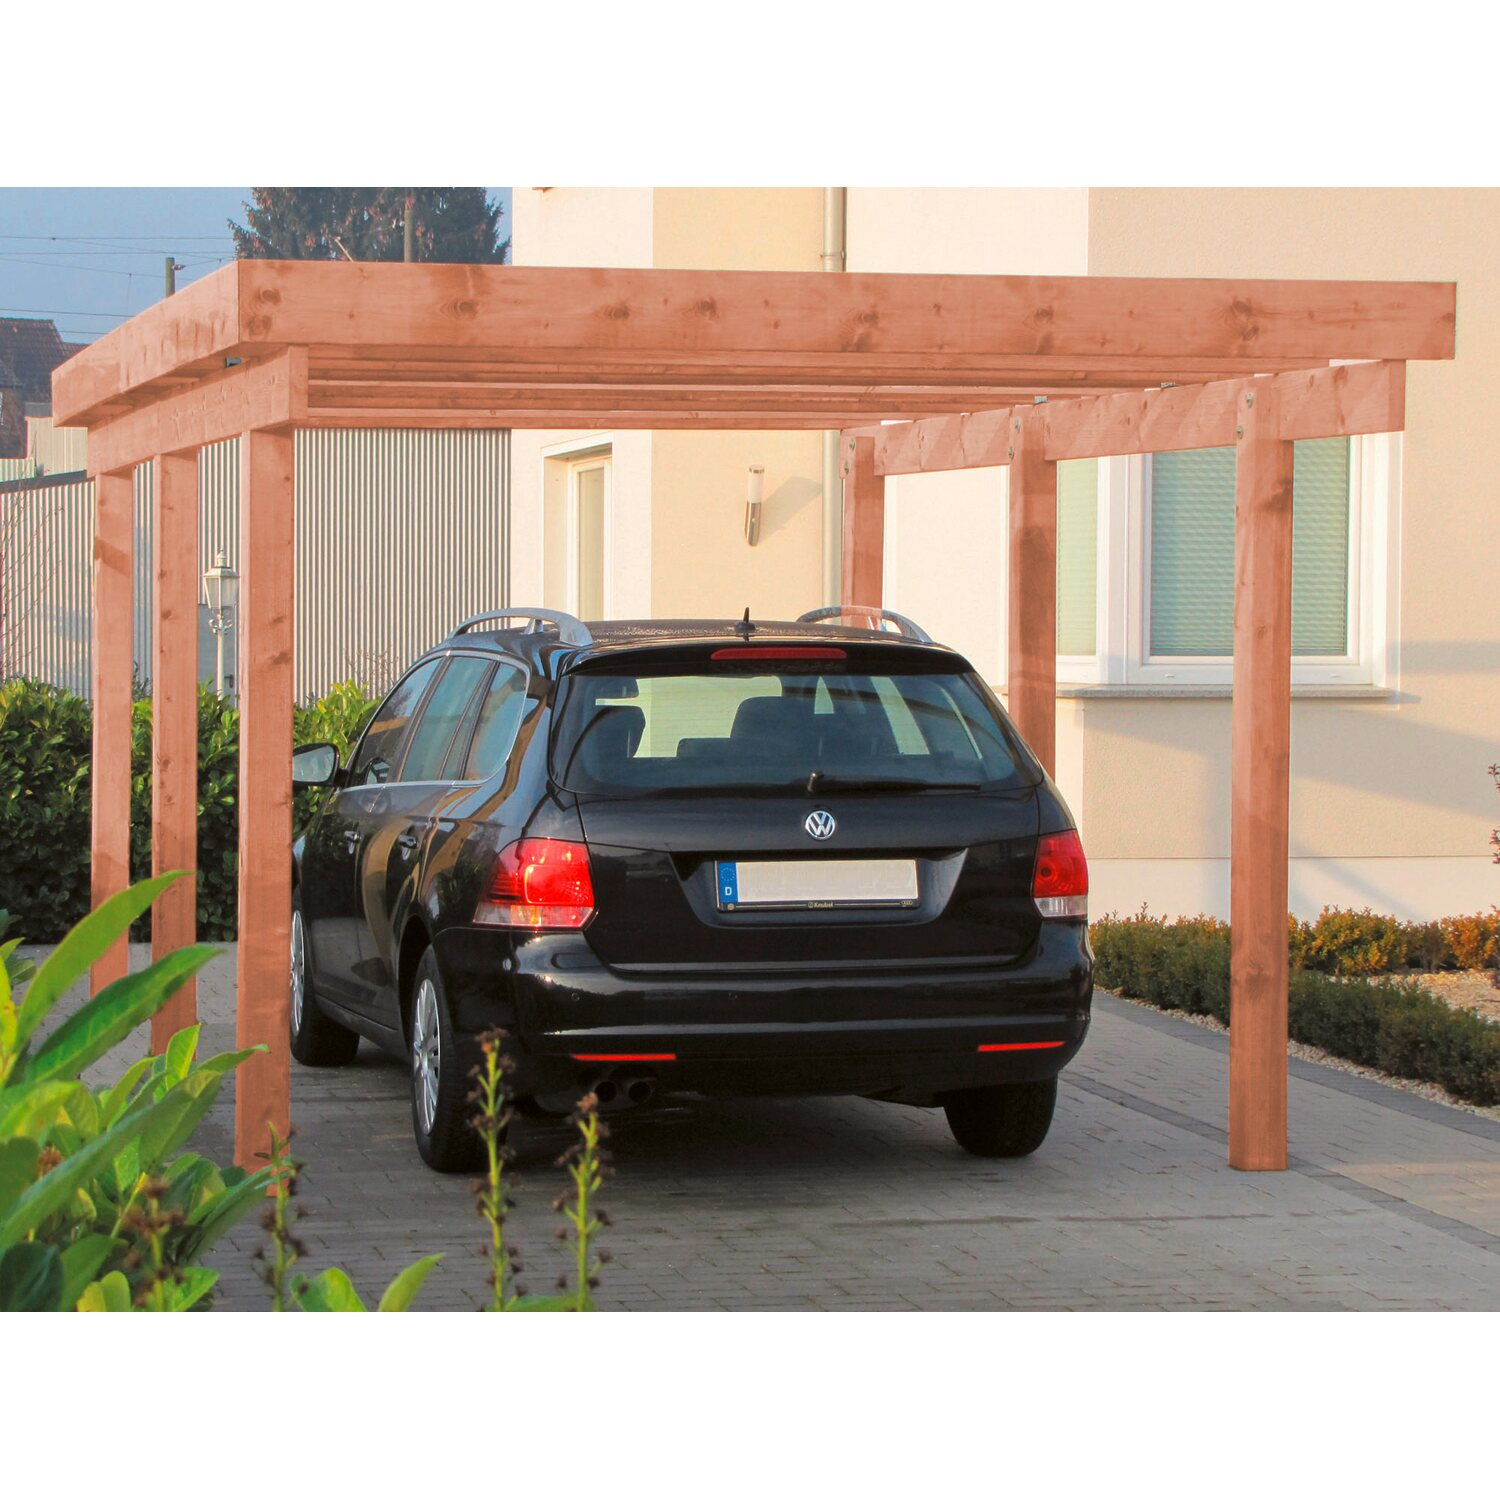 einzel carport amrum 1 pvc dacheindeckung douglasie natur kaufen bei obi. Black Bedroom Furniture Sets. Home Design Ideas